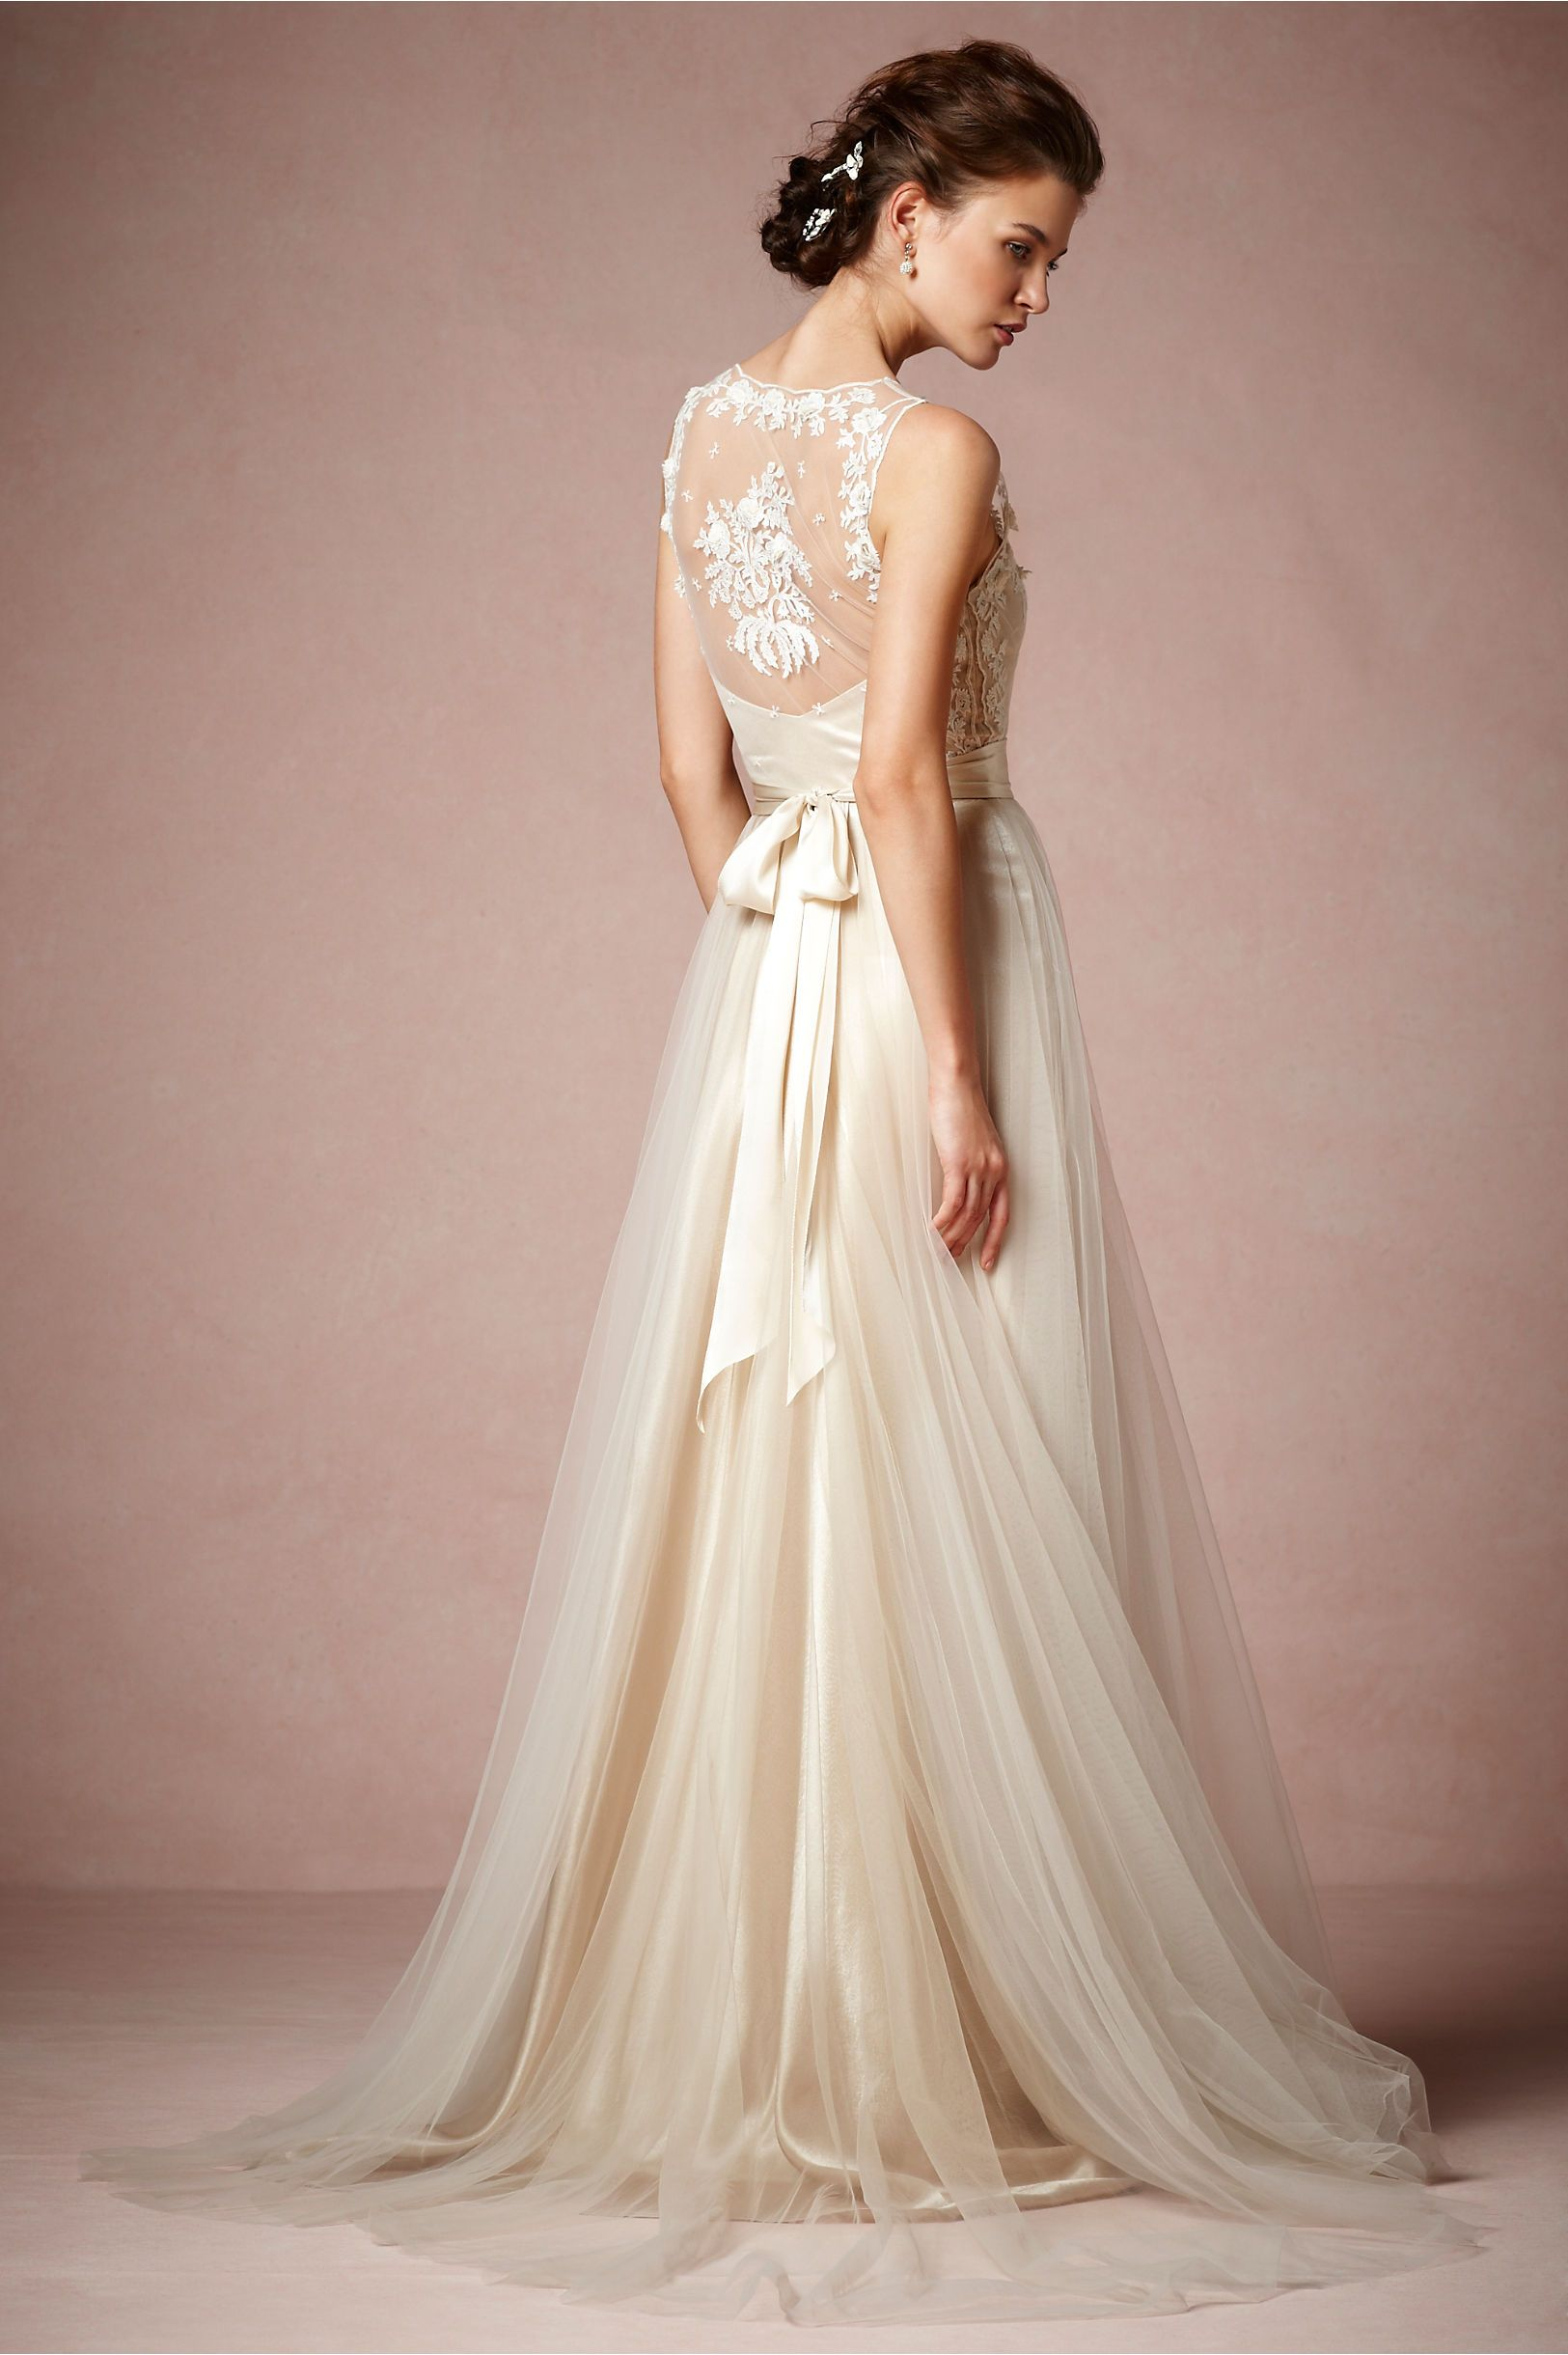 Onyx Gown in The Bride Wedding Dresses at BHLDN | fashion ...